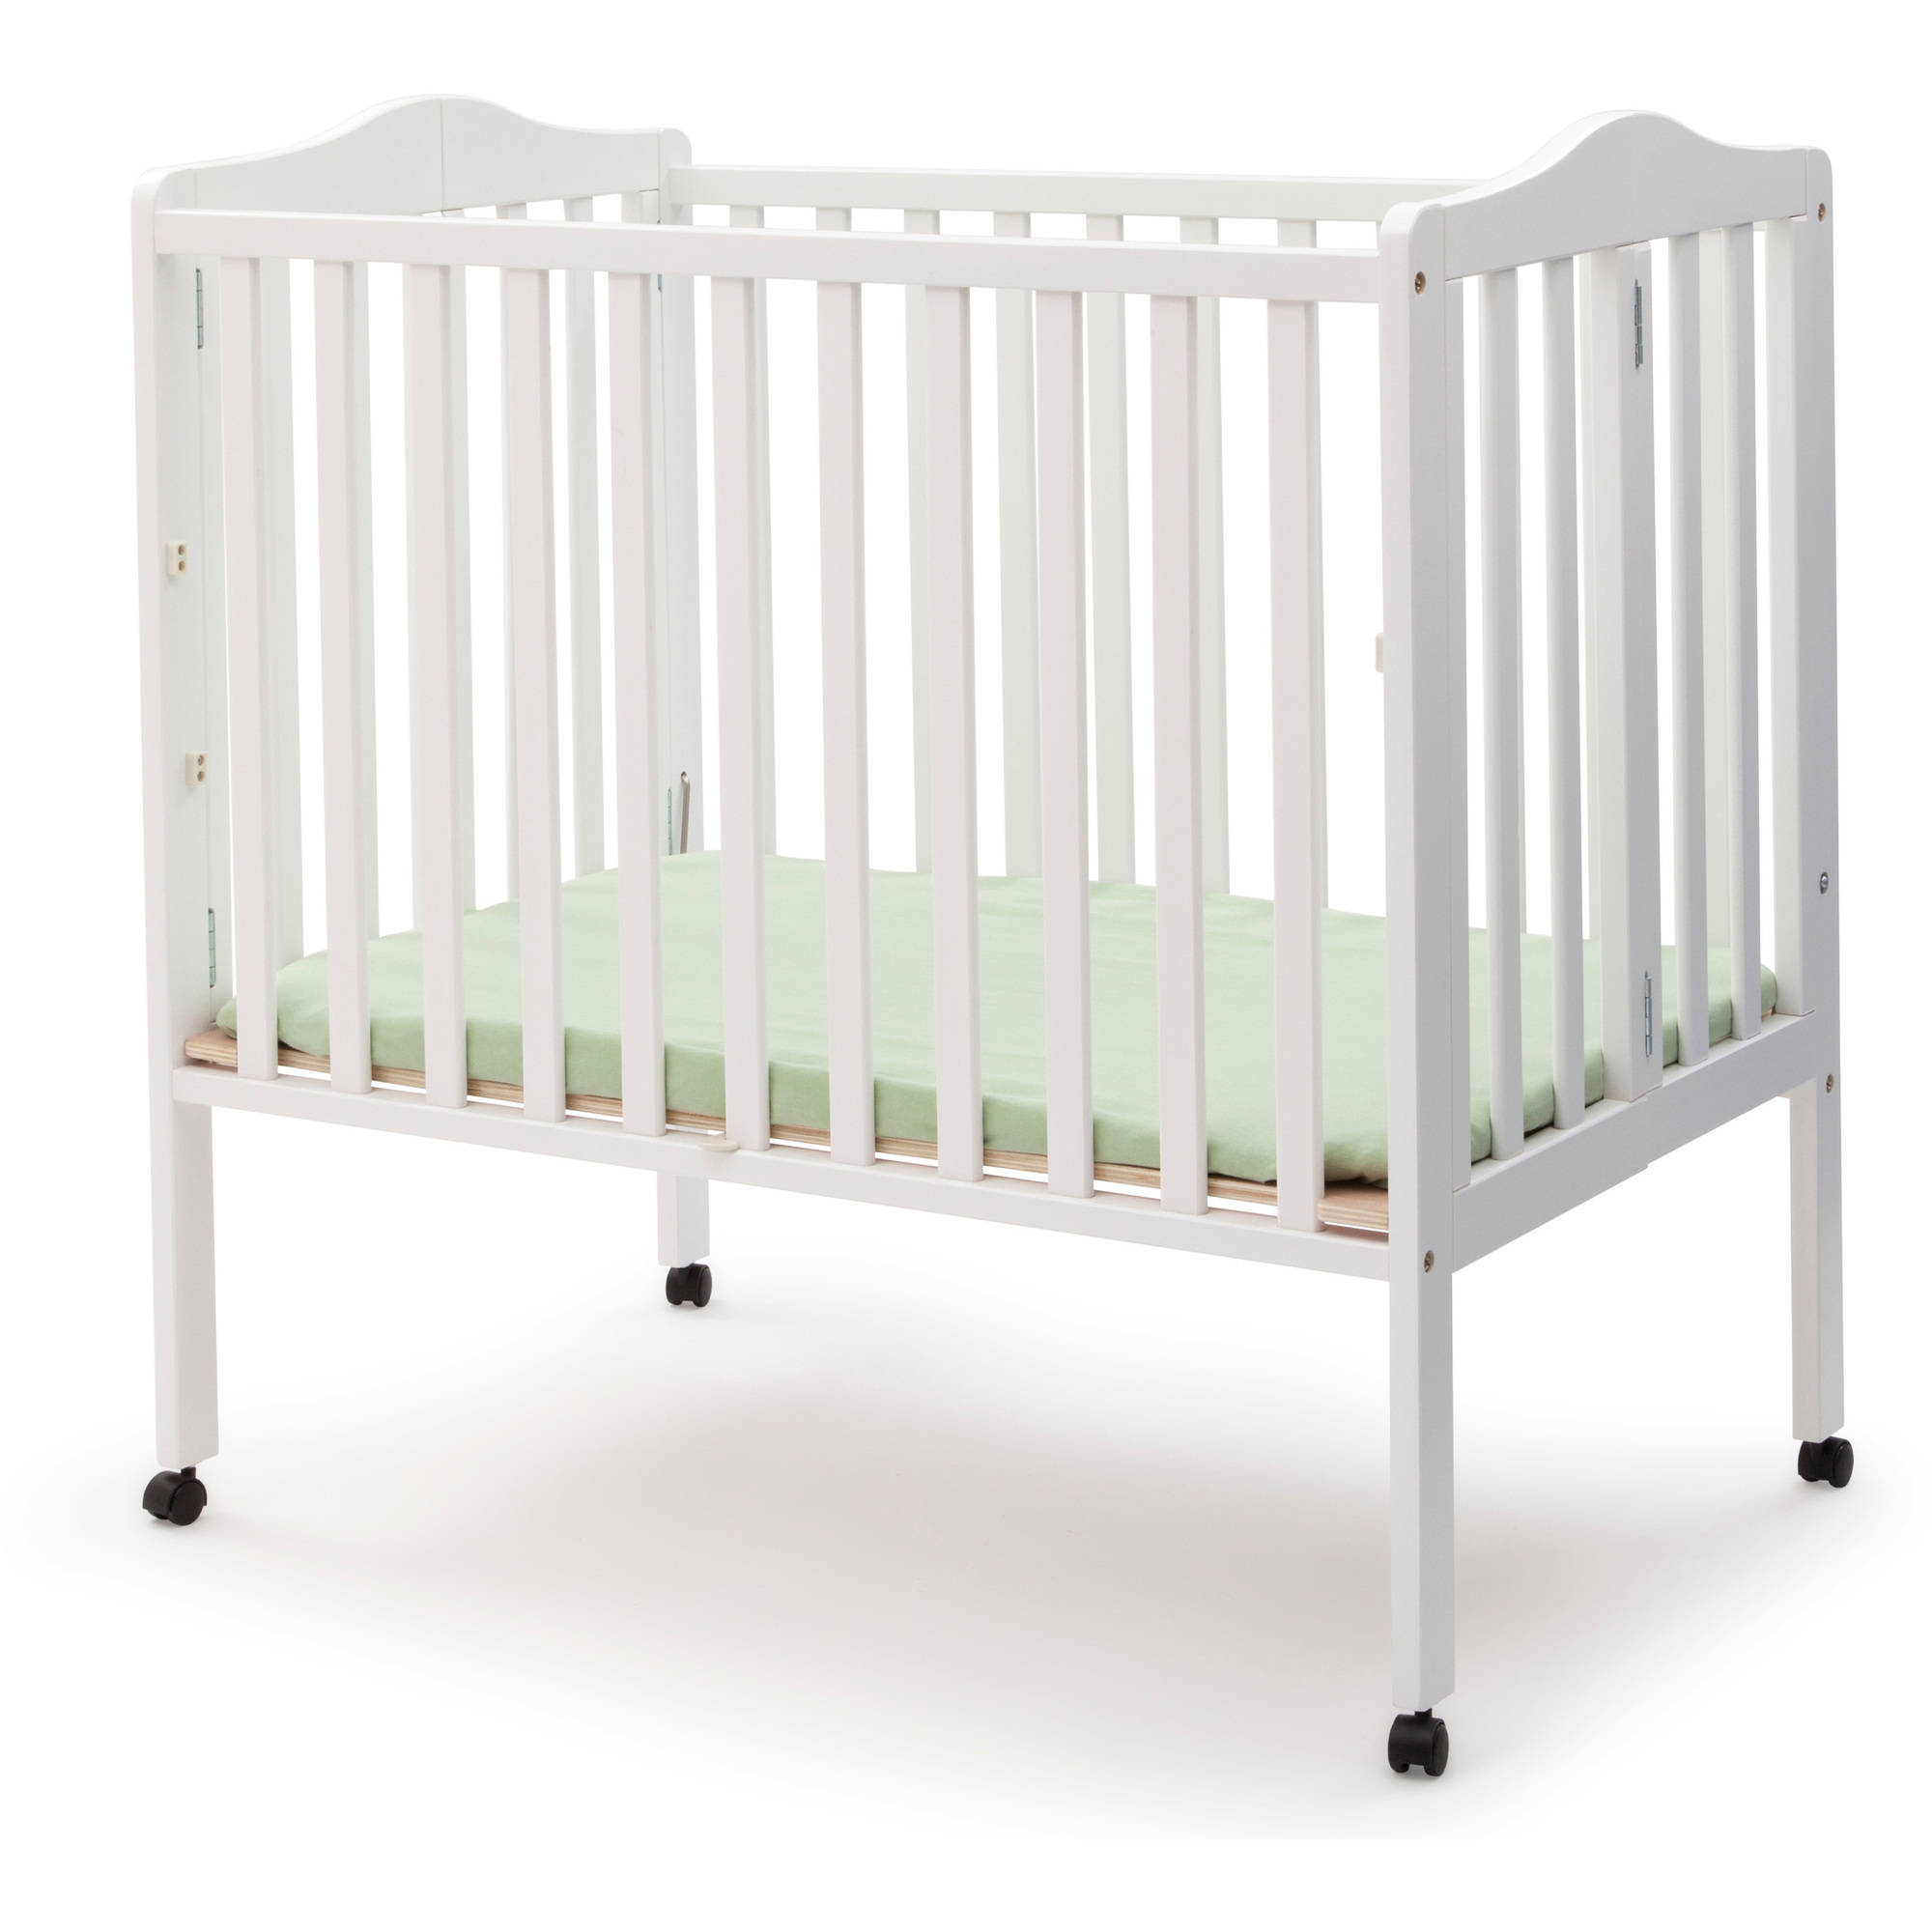 f878a880539 Delta Children Folding Portable Crib with Mattress - Walmart.com